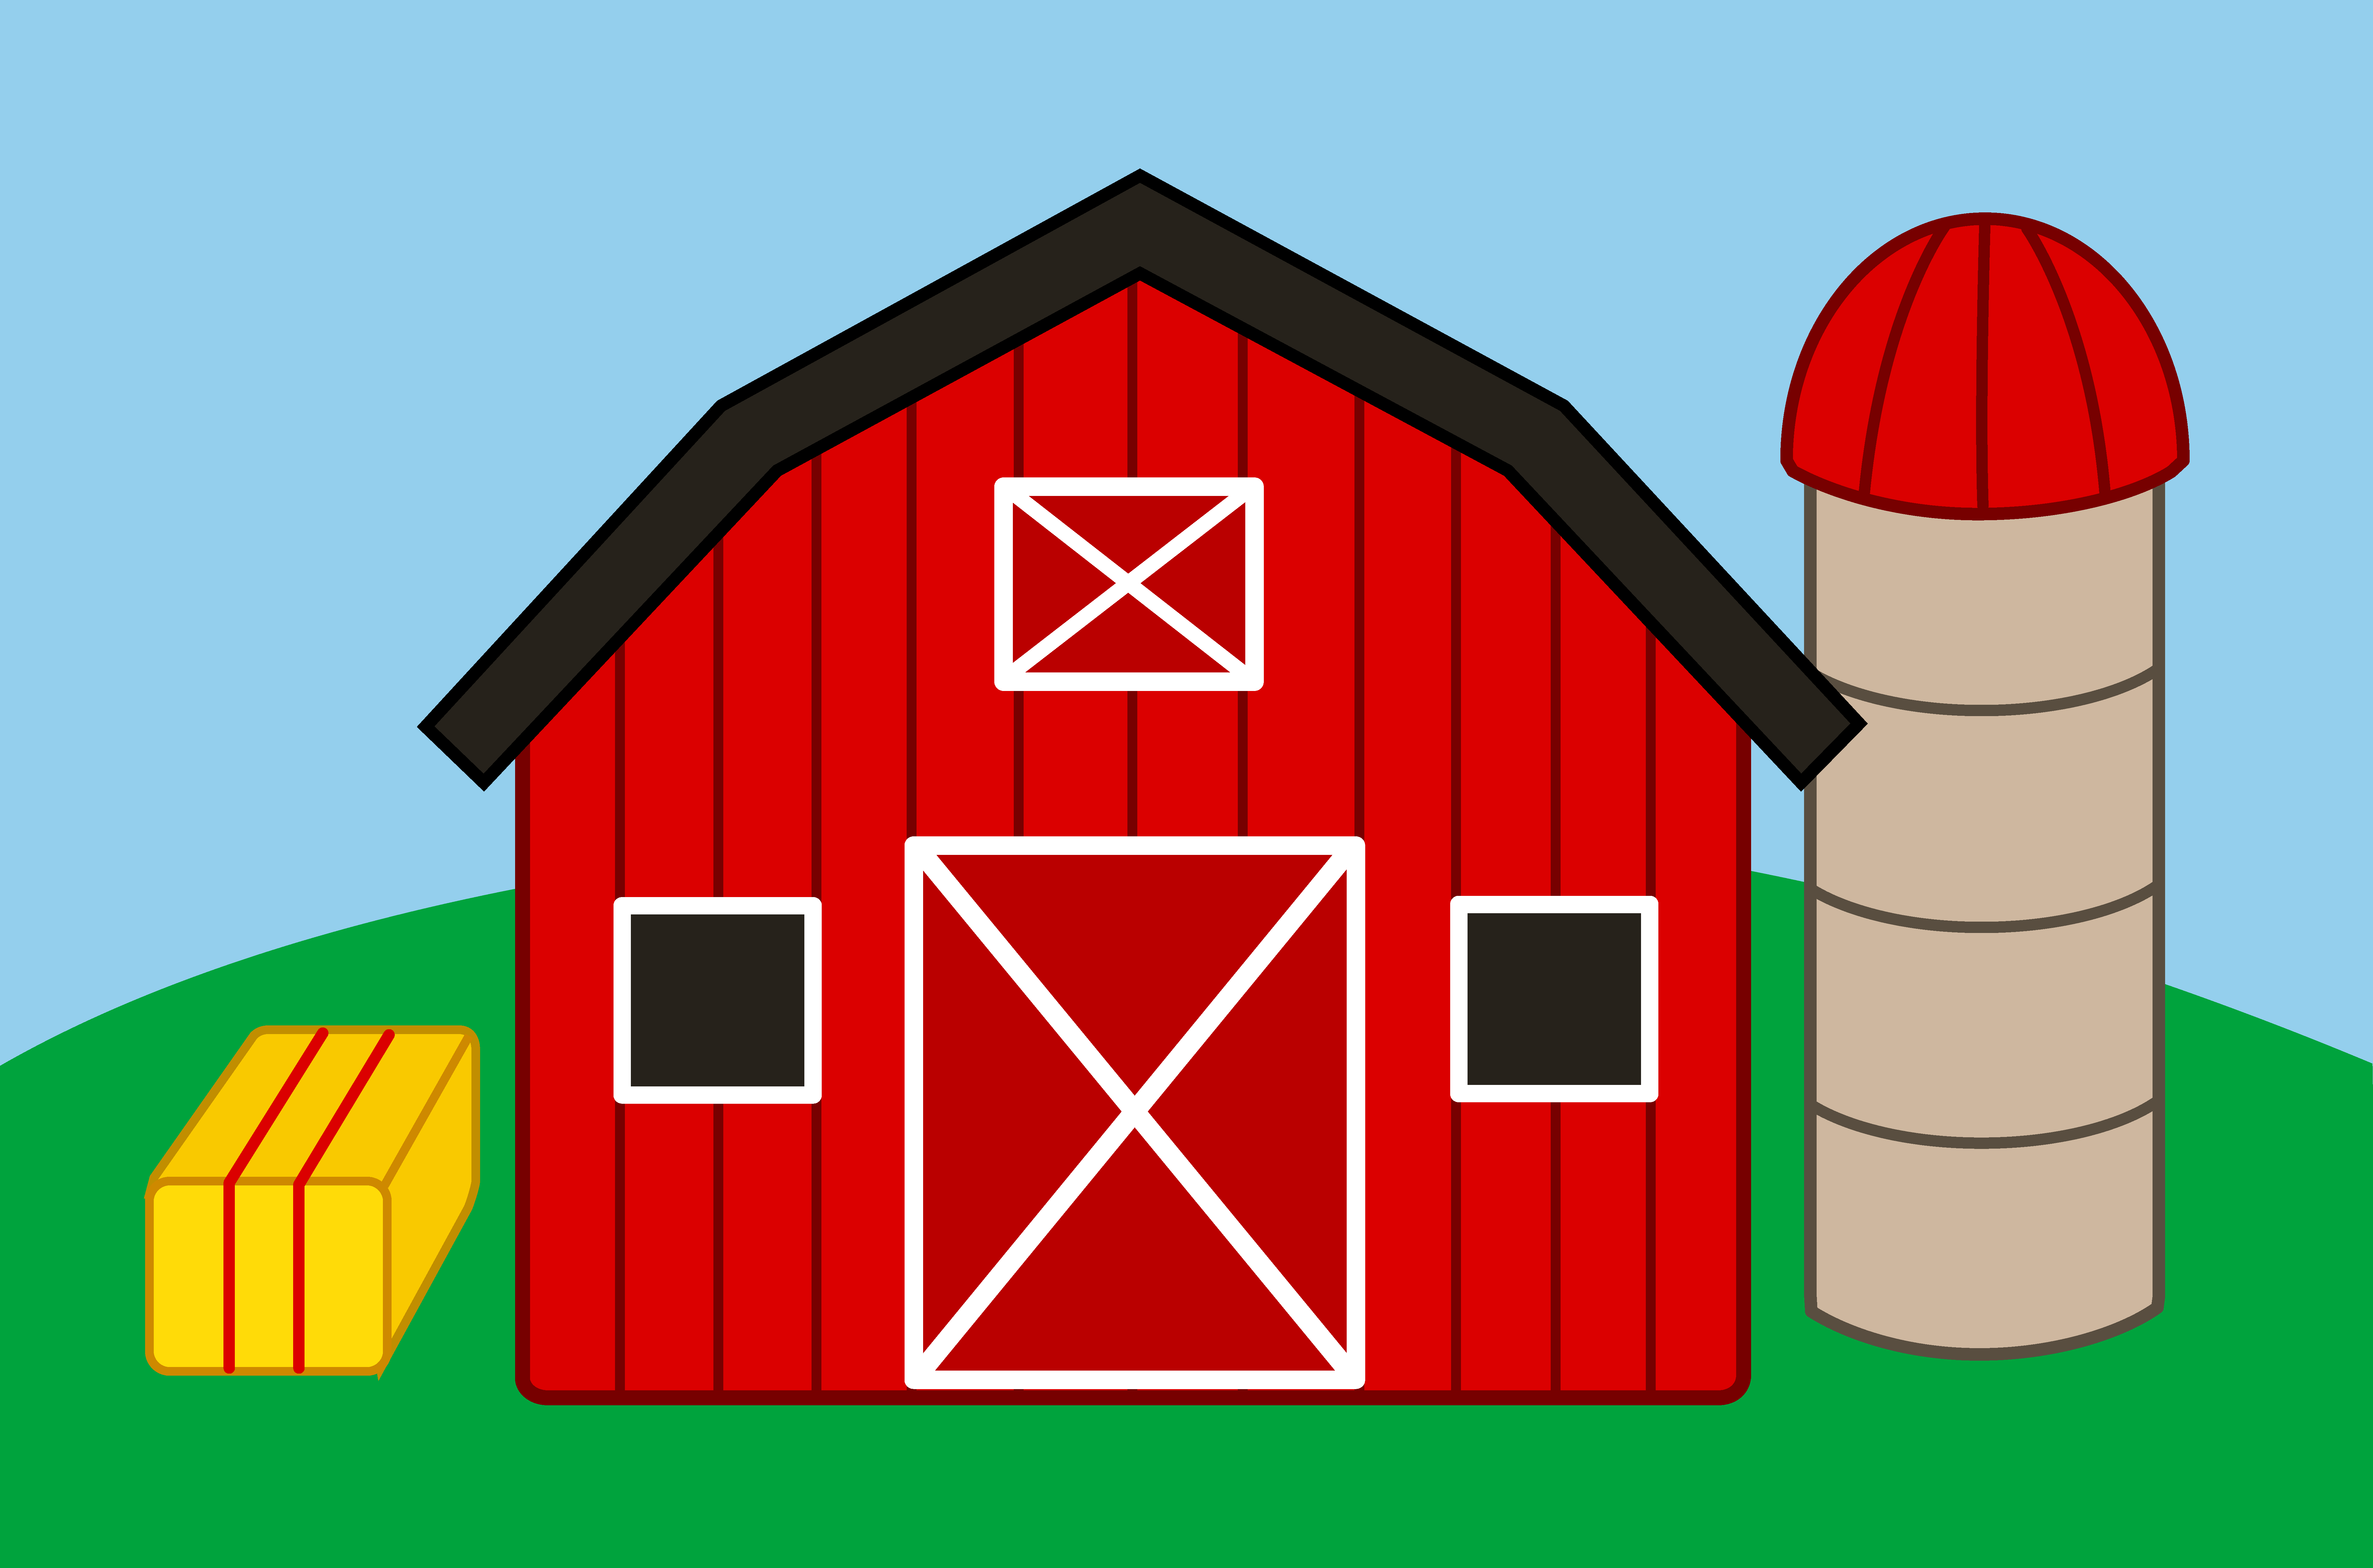 Farm cartoon clipart svg library download Cartoon pictures of a barn clipart - Cliparting.com svg library download